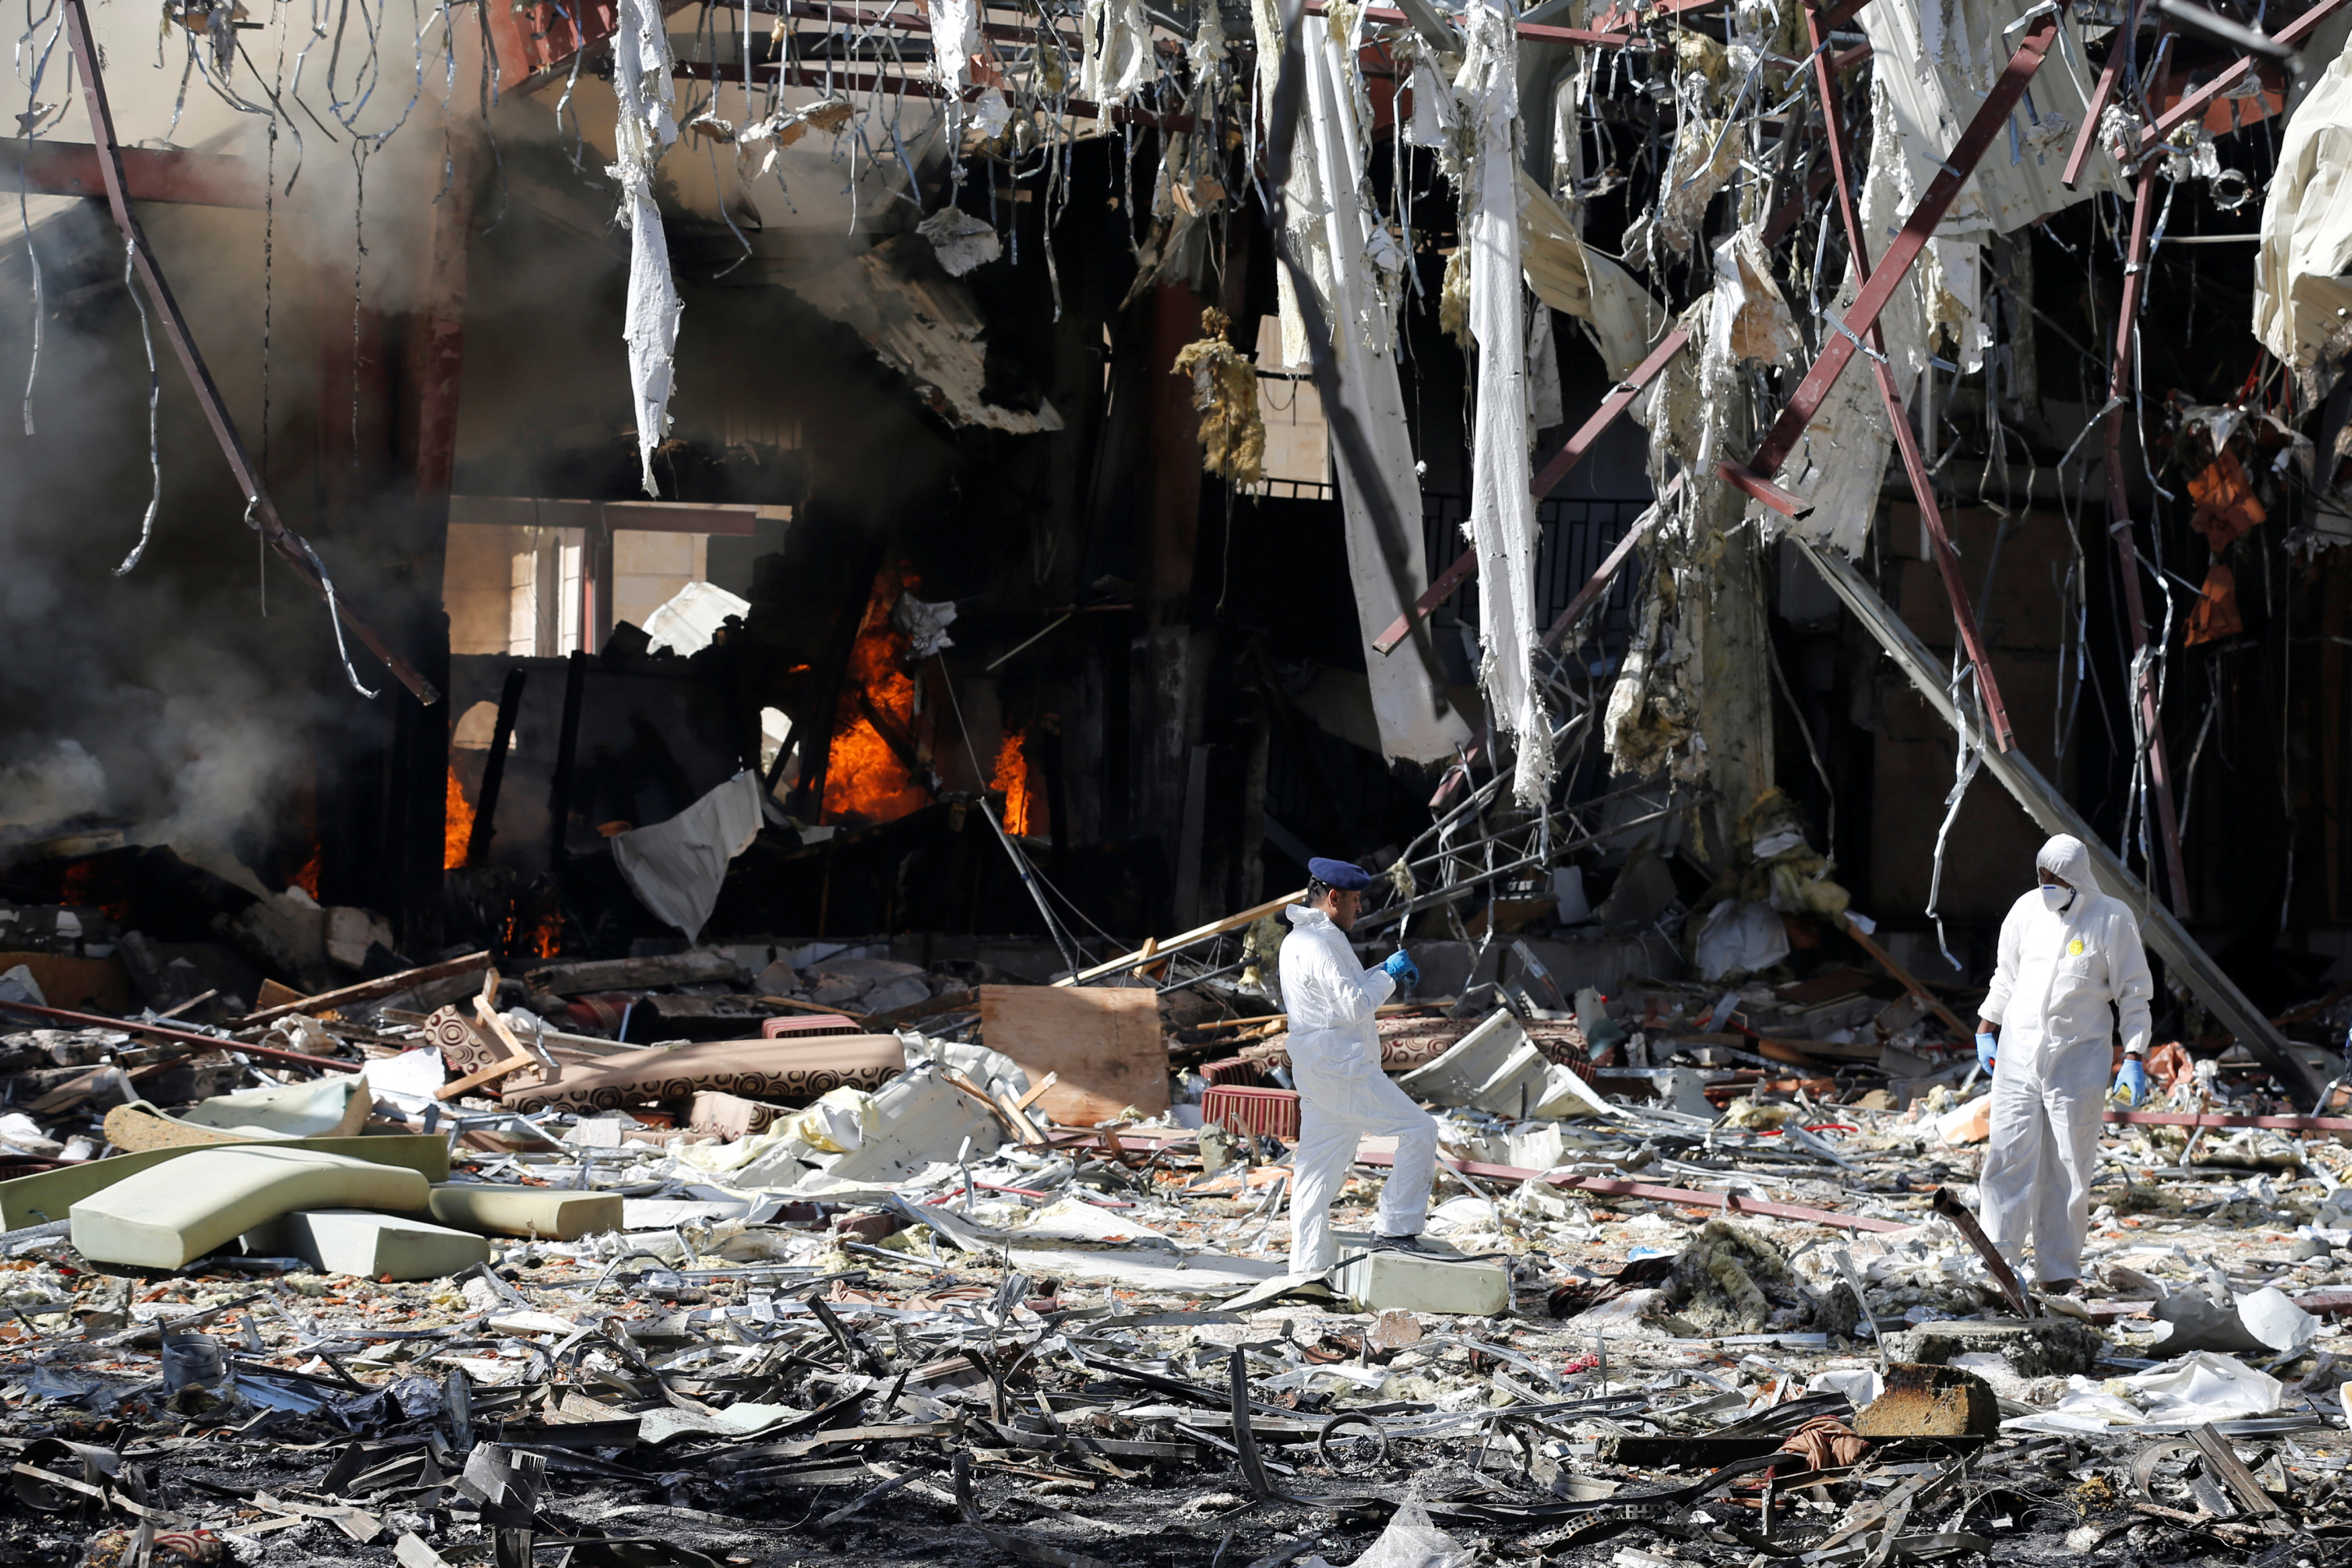 Forensic experts investigate the scene at the community hall where Saudi-led warplanes struck a funeral in Sanaa, the capital of Yemen, October 9, 2016.